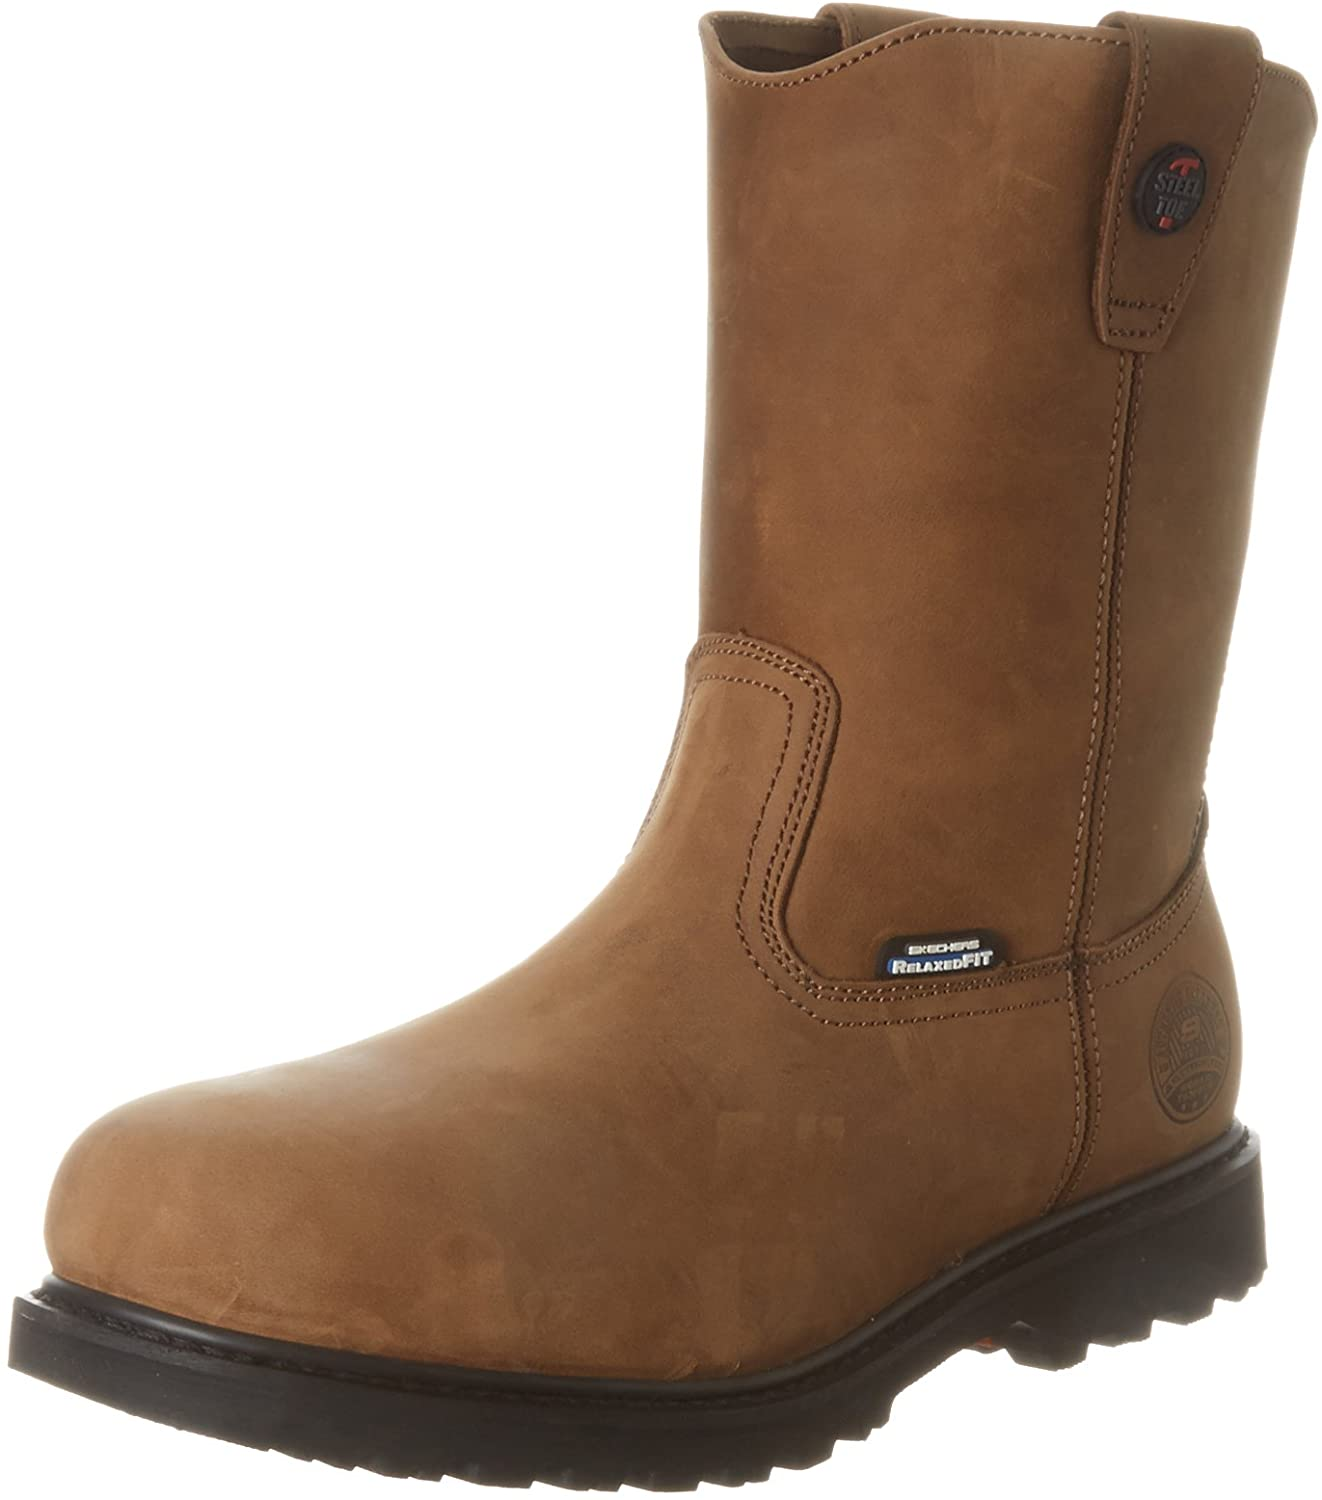 Skechers Men's Ruffneck Work Boot